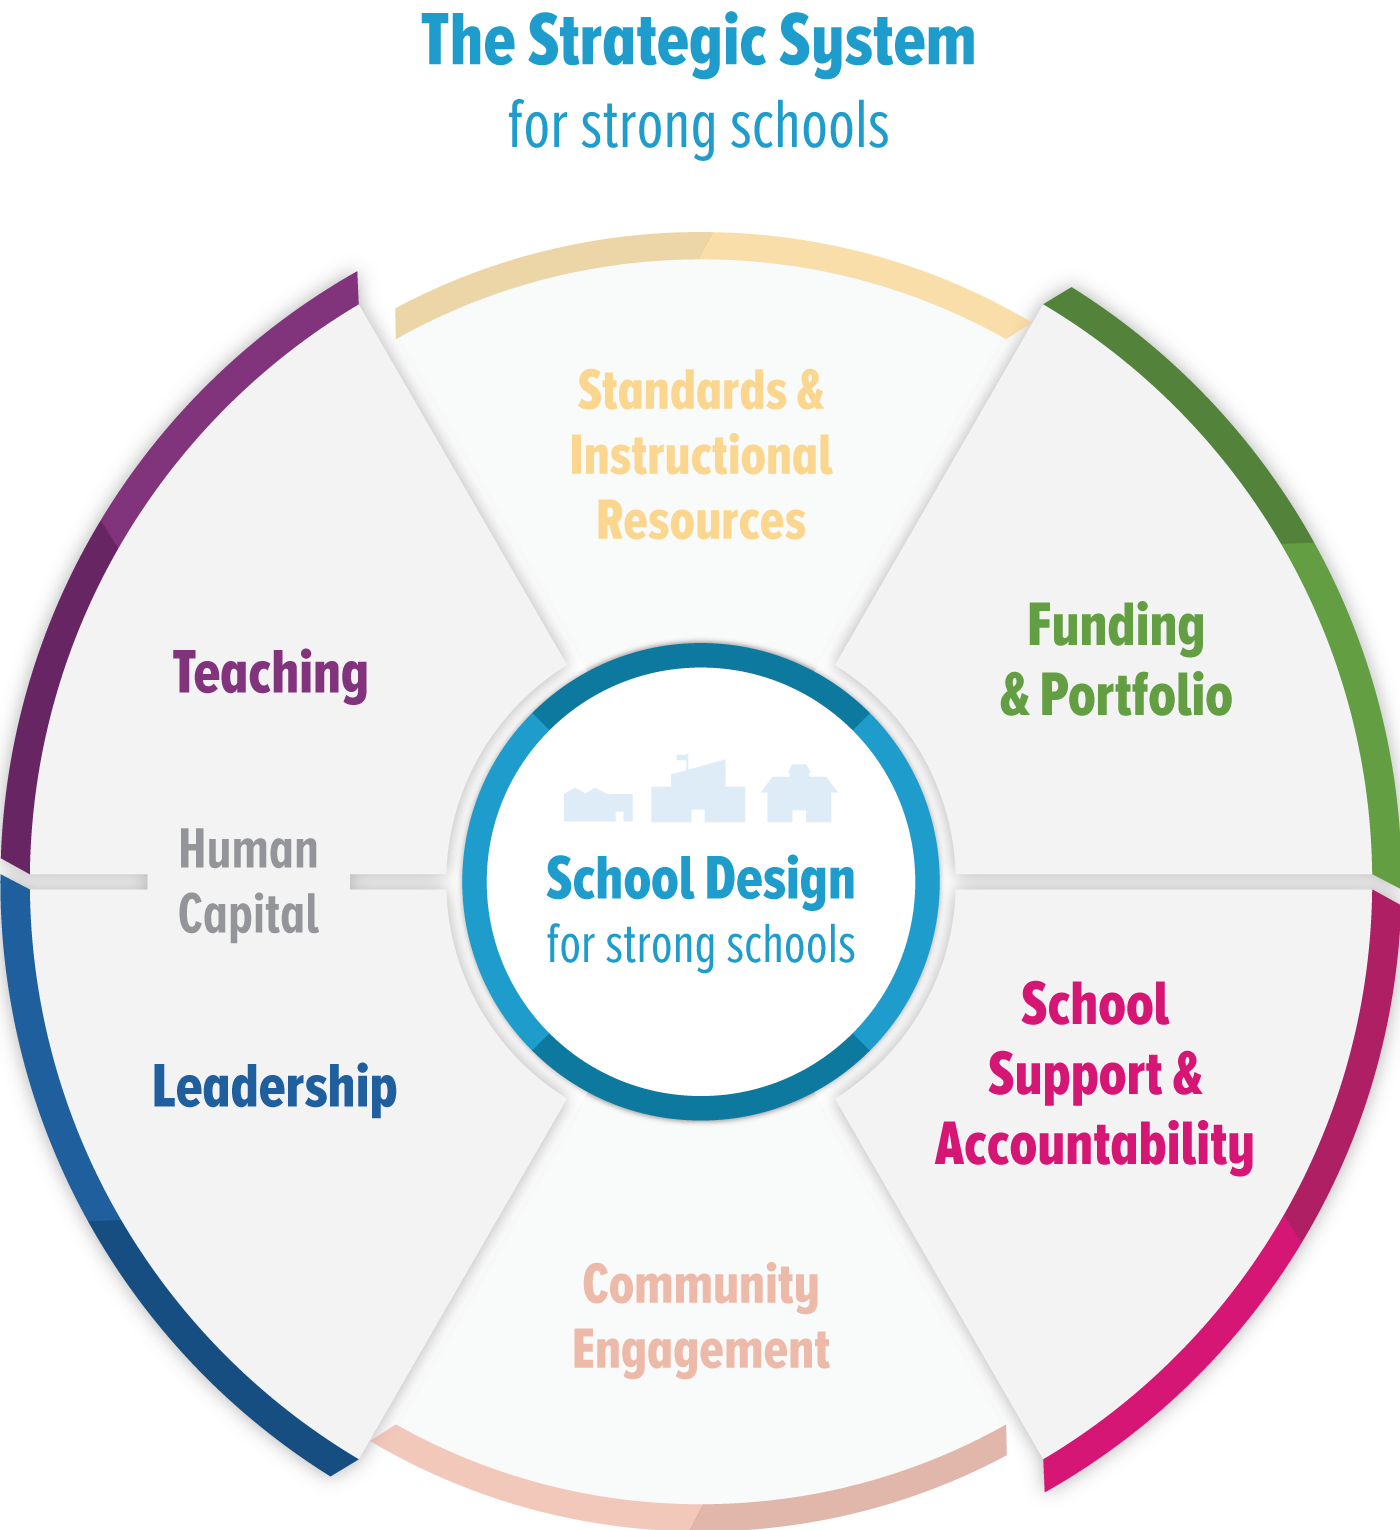 Strategic System for Strong Schools